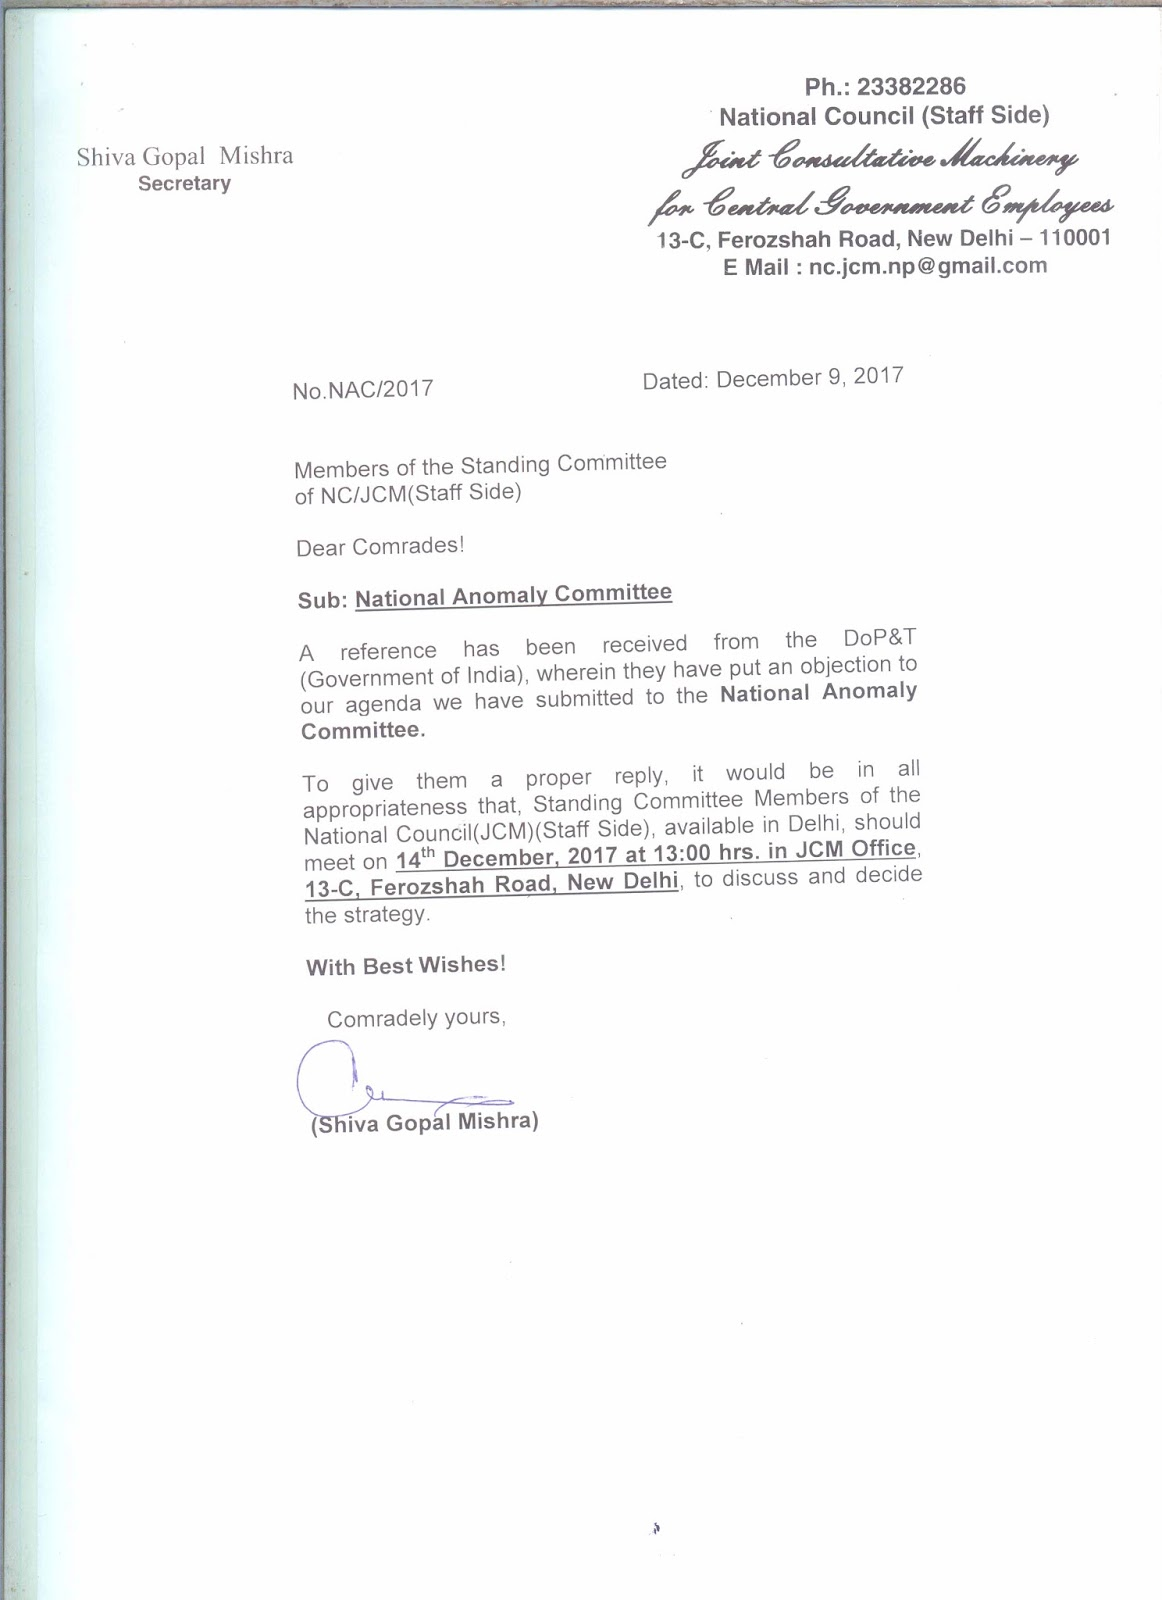 National Anomaly Committee NCJCM Meeting On 14th December 2017